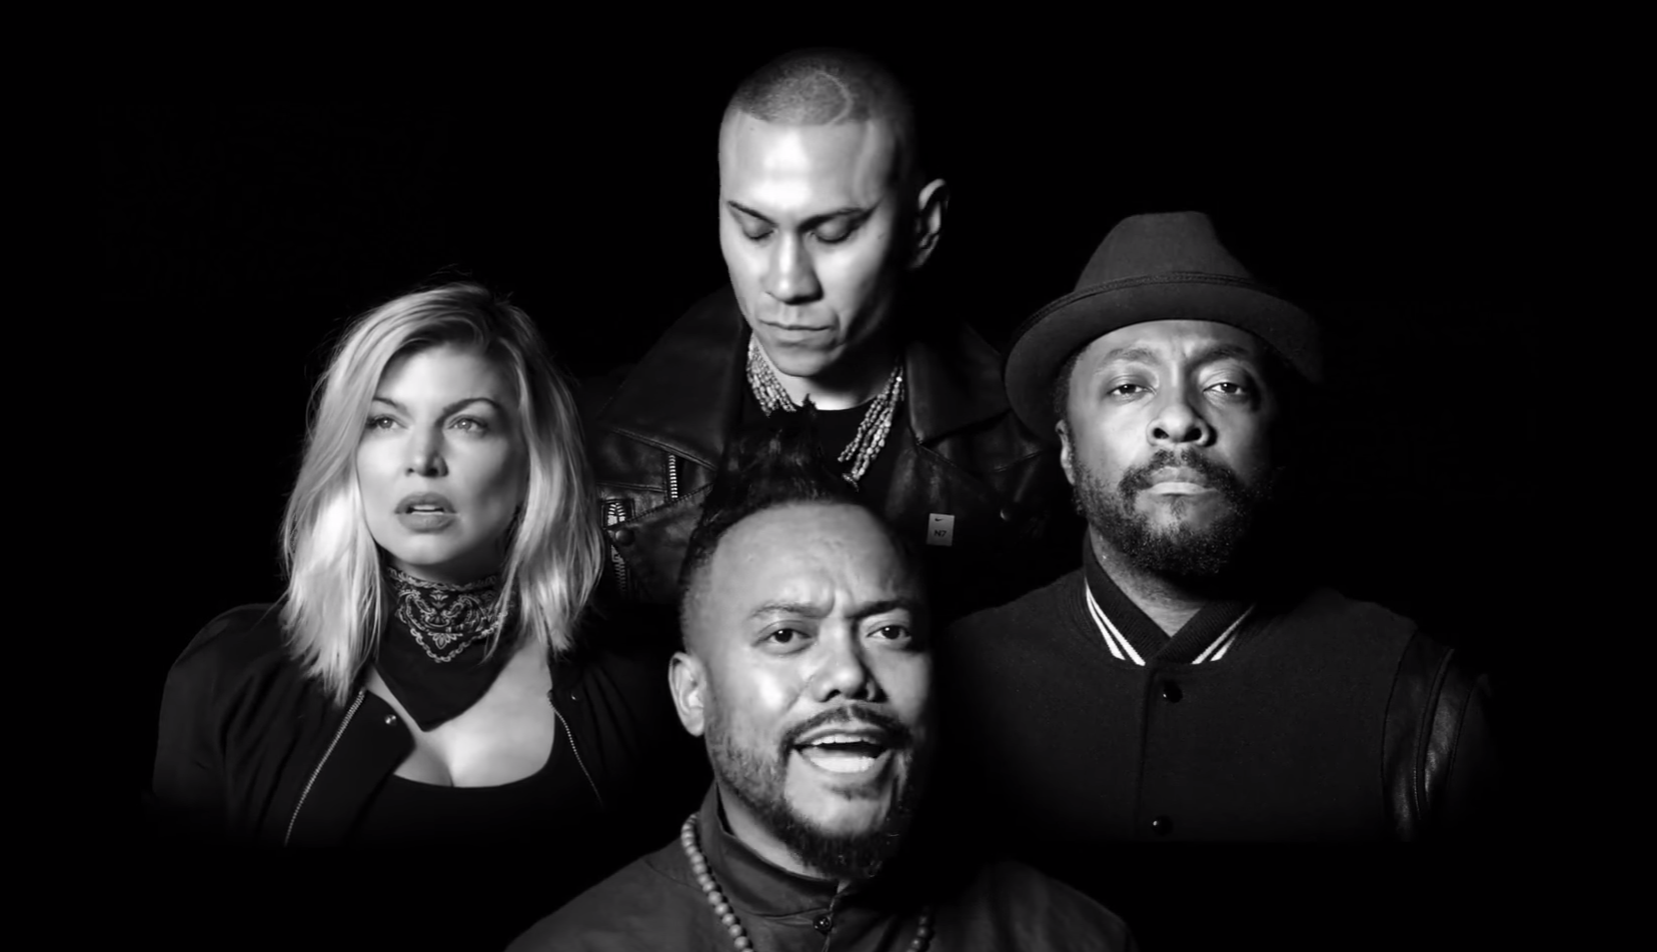 Still from the new music video showing Black Eyed Peas. Credit:  YouTube